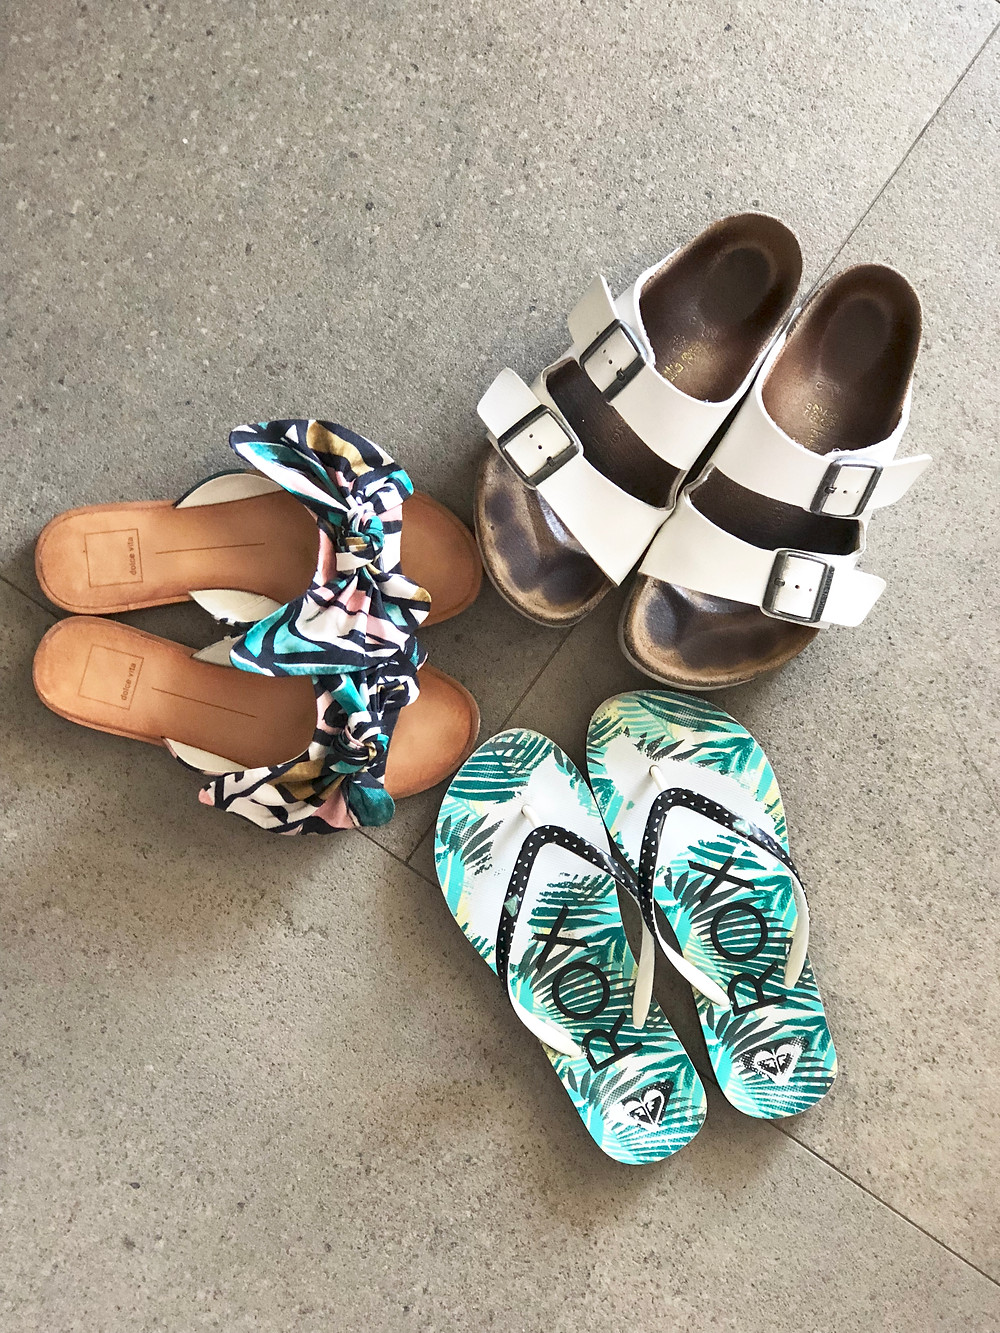 shoes to pack for the long weekend beach getaway // sunnyinjune.com